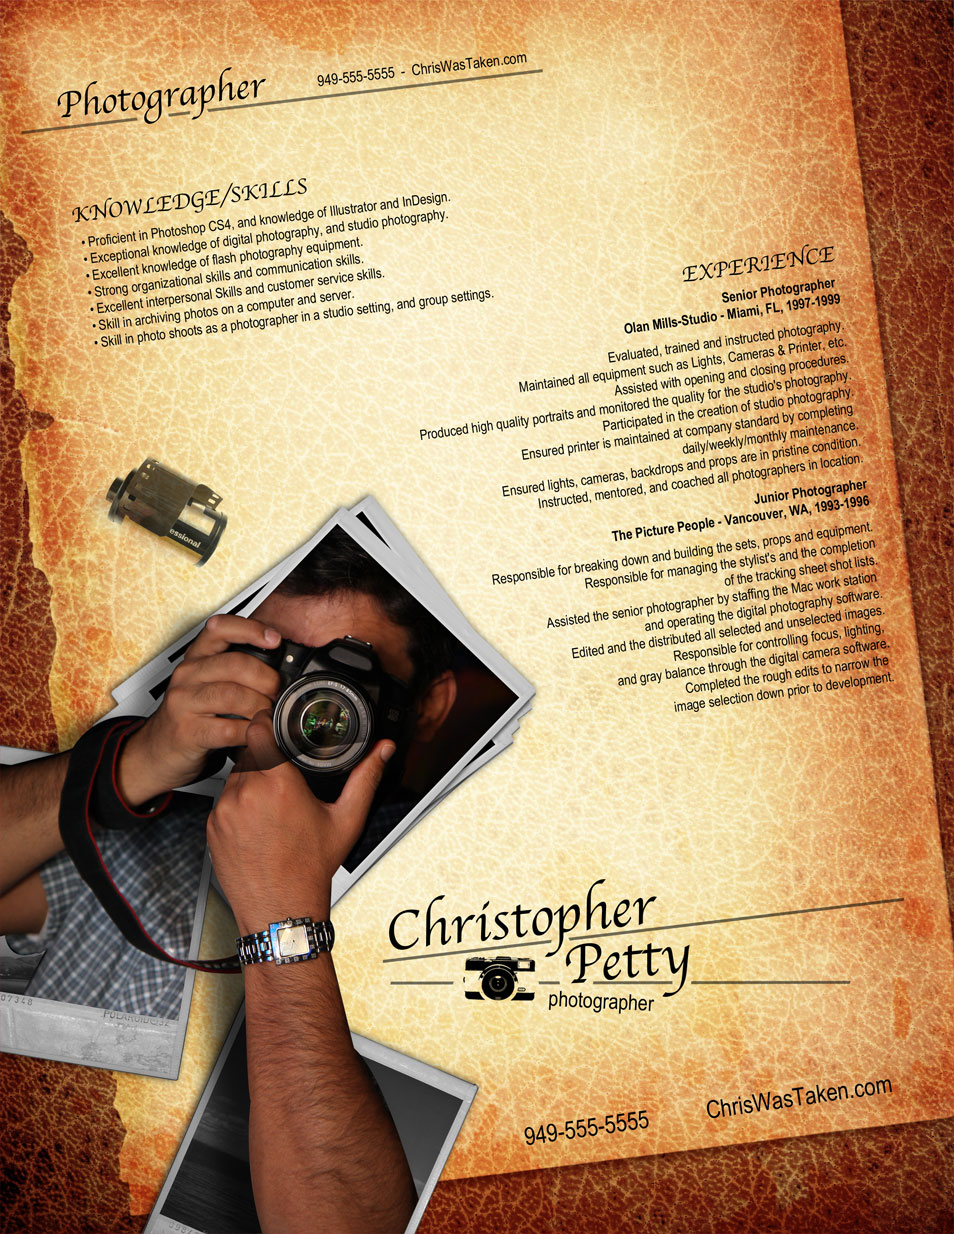 Opposenewapstandardsus  Winsome  Creative Cvresume Design Inspiration With Great Resume Photographer With Delectable Basic Resume Layout Also Sample Resume For Office Manager In Addition Resume For Retail Sales Associate And Sample Resume For Bank Teller As Well As Resume For High School Student With No Experience Additionally Flight Attendant Resume Objective From Cssauthorcom With Opposenewapstandardsus  Great  Creative Cvresume Design Inspiration With Delectable Resume Photographer And Winsome Basic Resume Layout Also Sample Resume For Office Manager In Addition Resume For Retail Sales Associate From Cssauthorcom